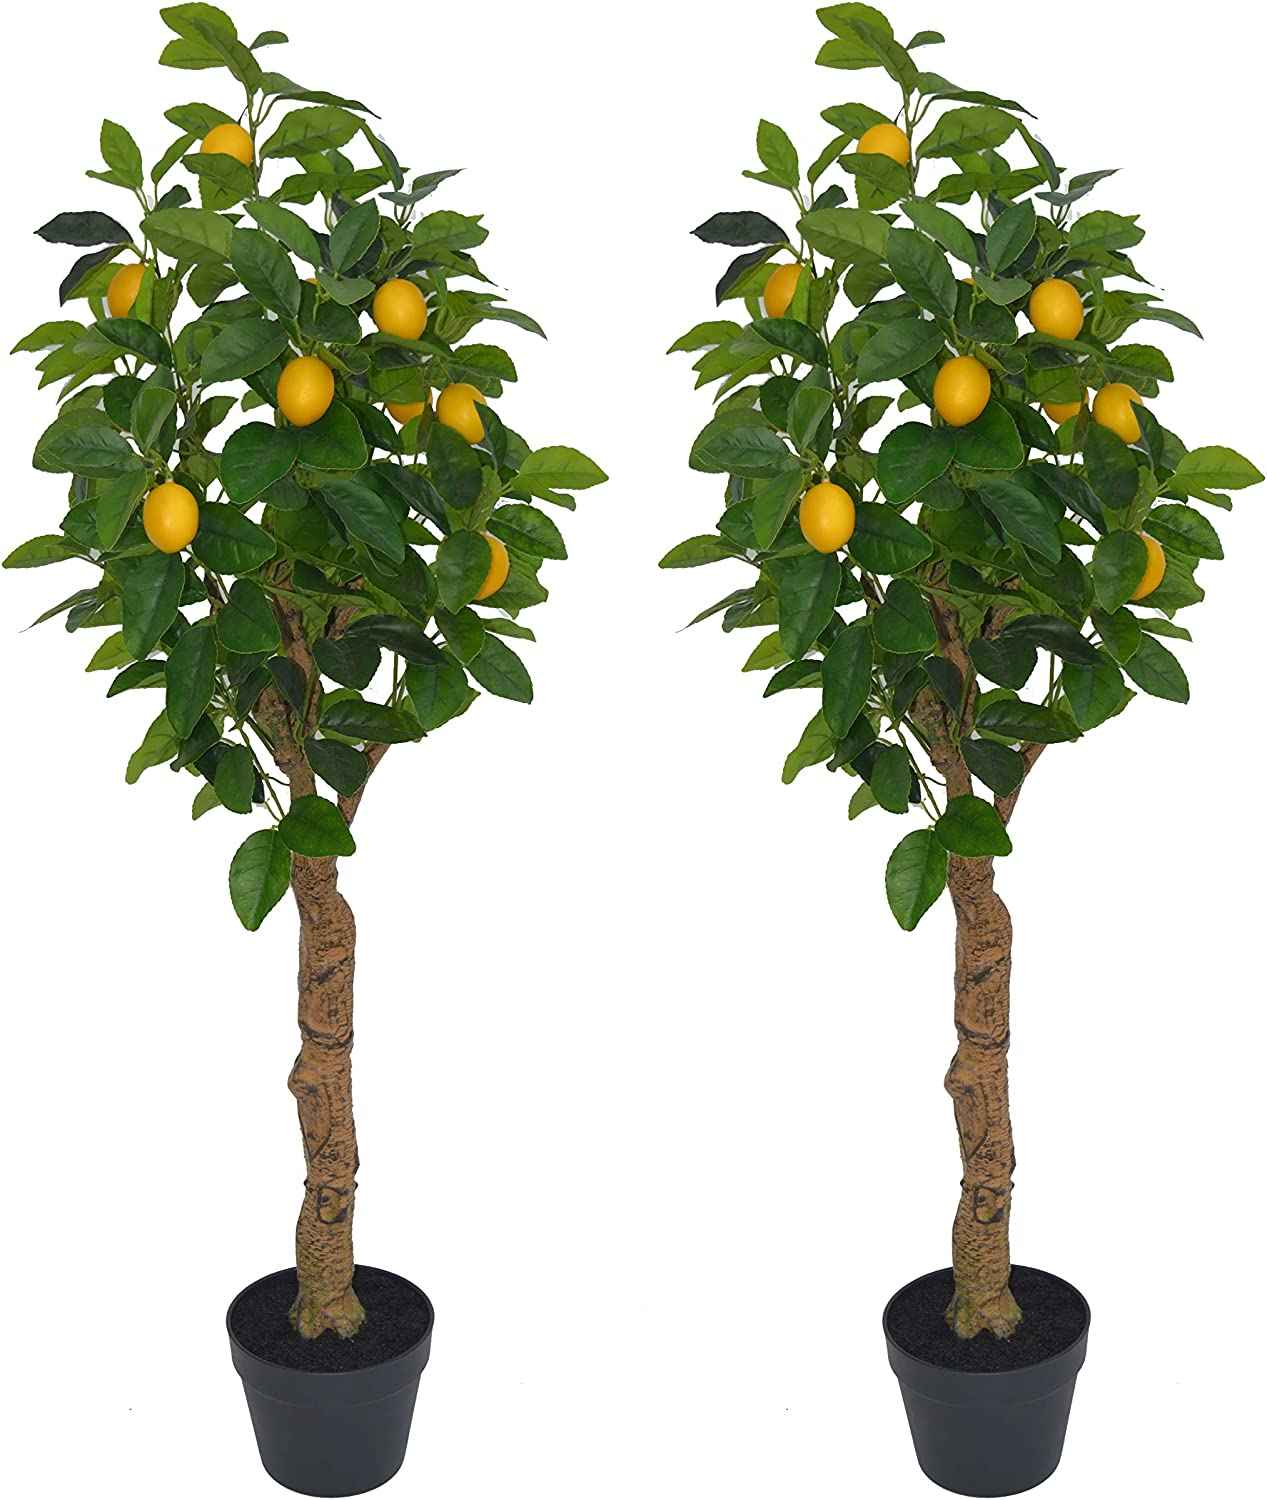 AMERIQUE Pair 4 Feet Gorgeous & Lifelike Six-Branch Artificial Trees with Various Size Lemon Fruits, with Sculpting Resin Trunks and Pot, Real Touch Tech, 48